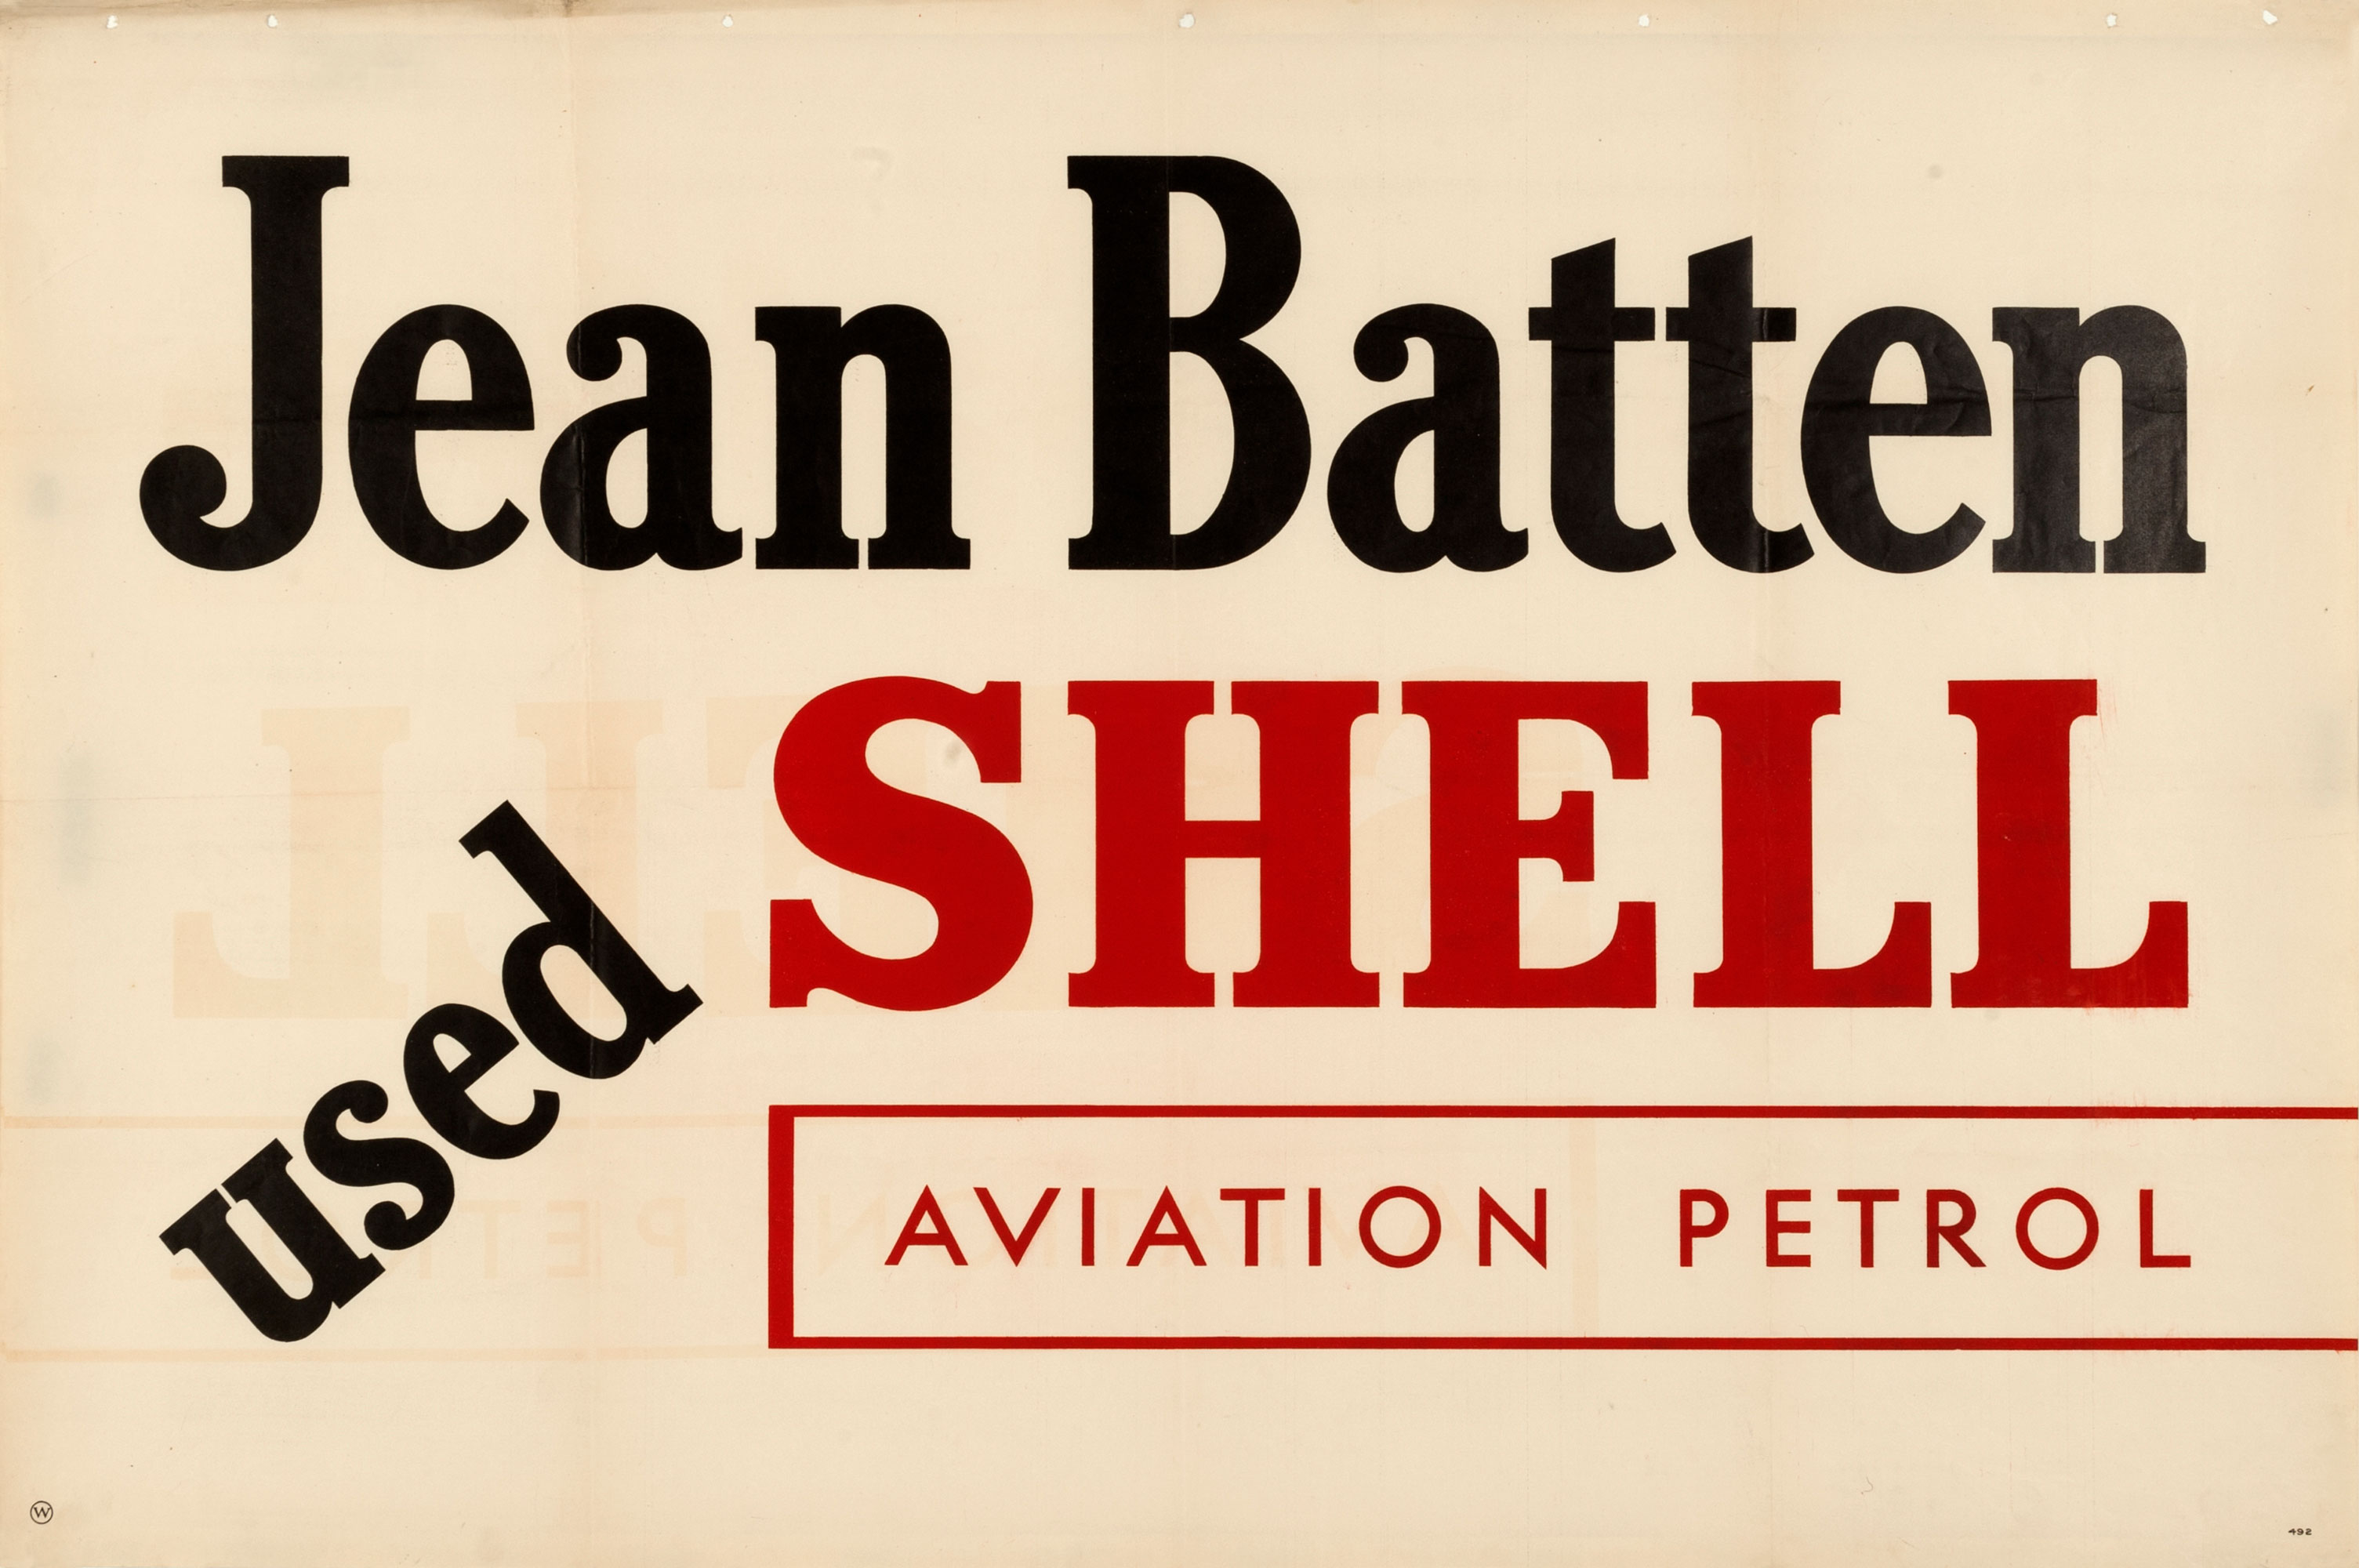 Shell poster number 492, Jean Batten used Shell Aviation petrol.